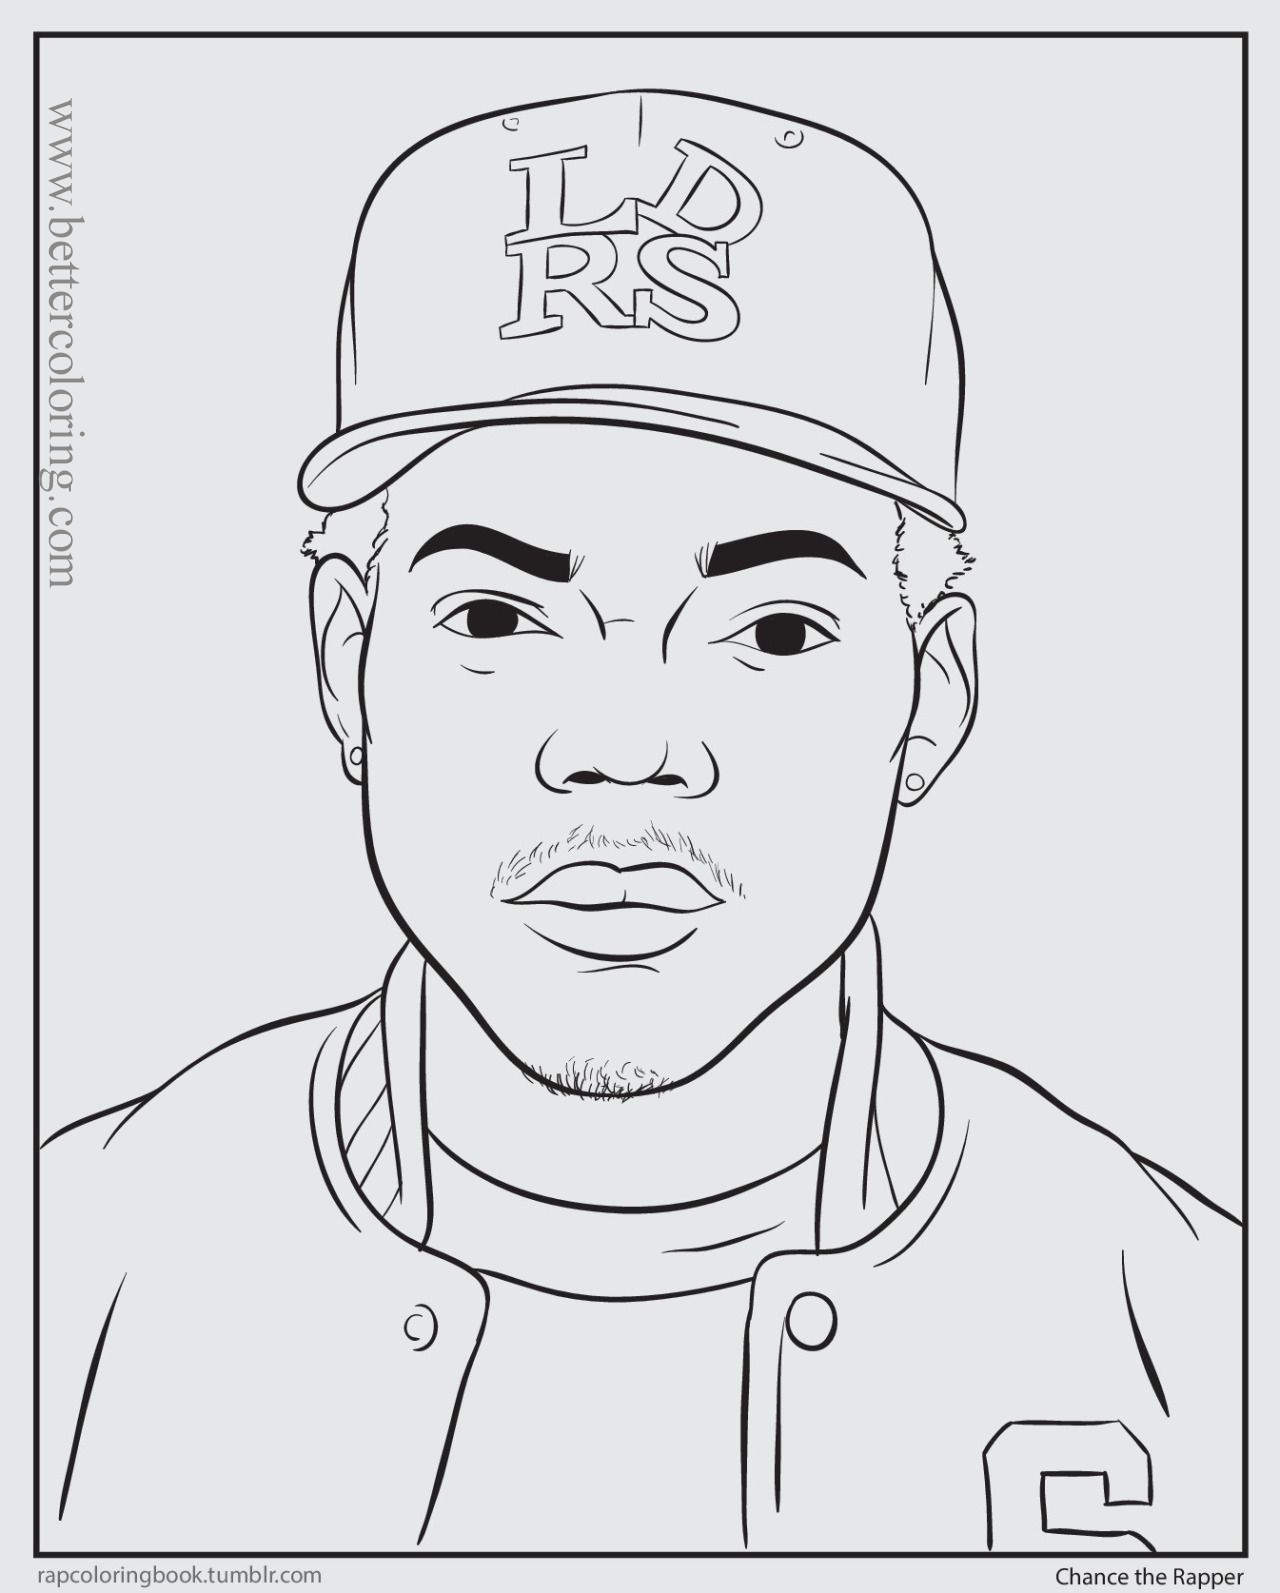 Gangsta Rapper Coloring Pages - Free Printable Coloring Pages